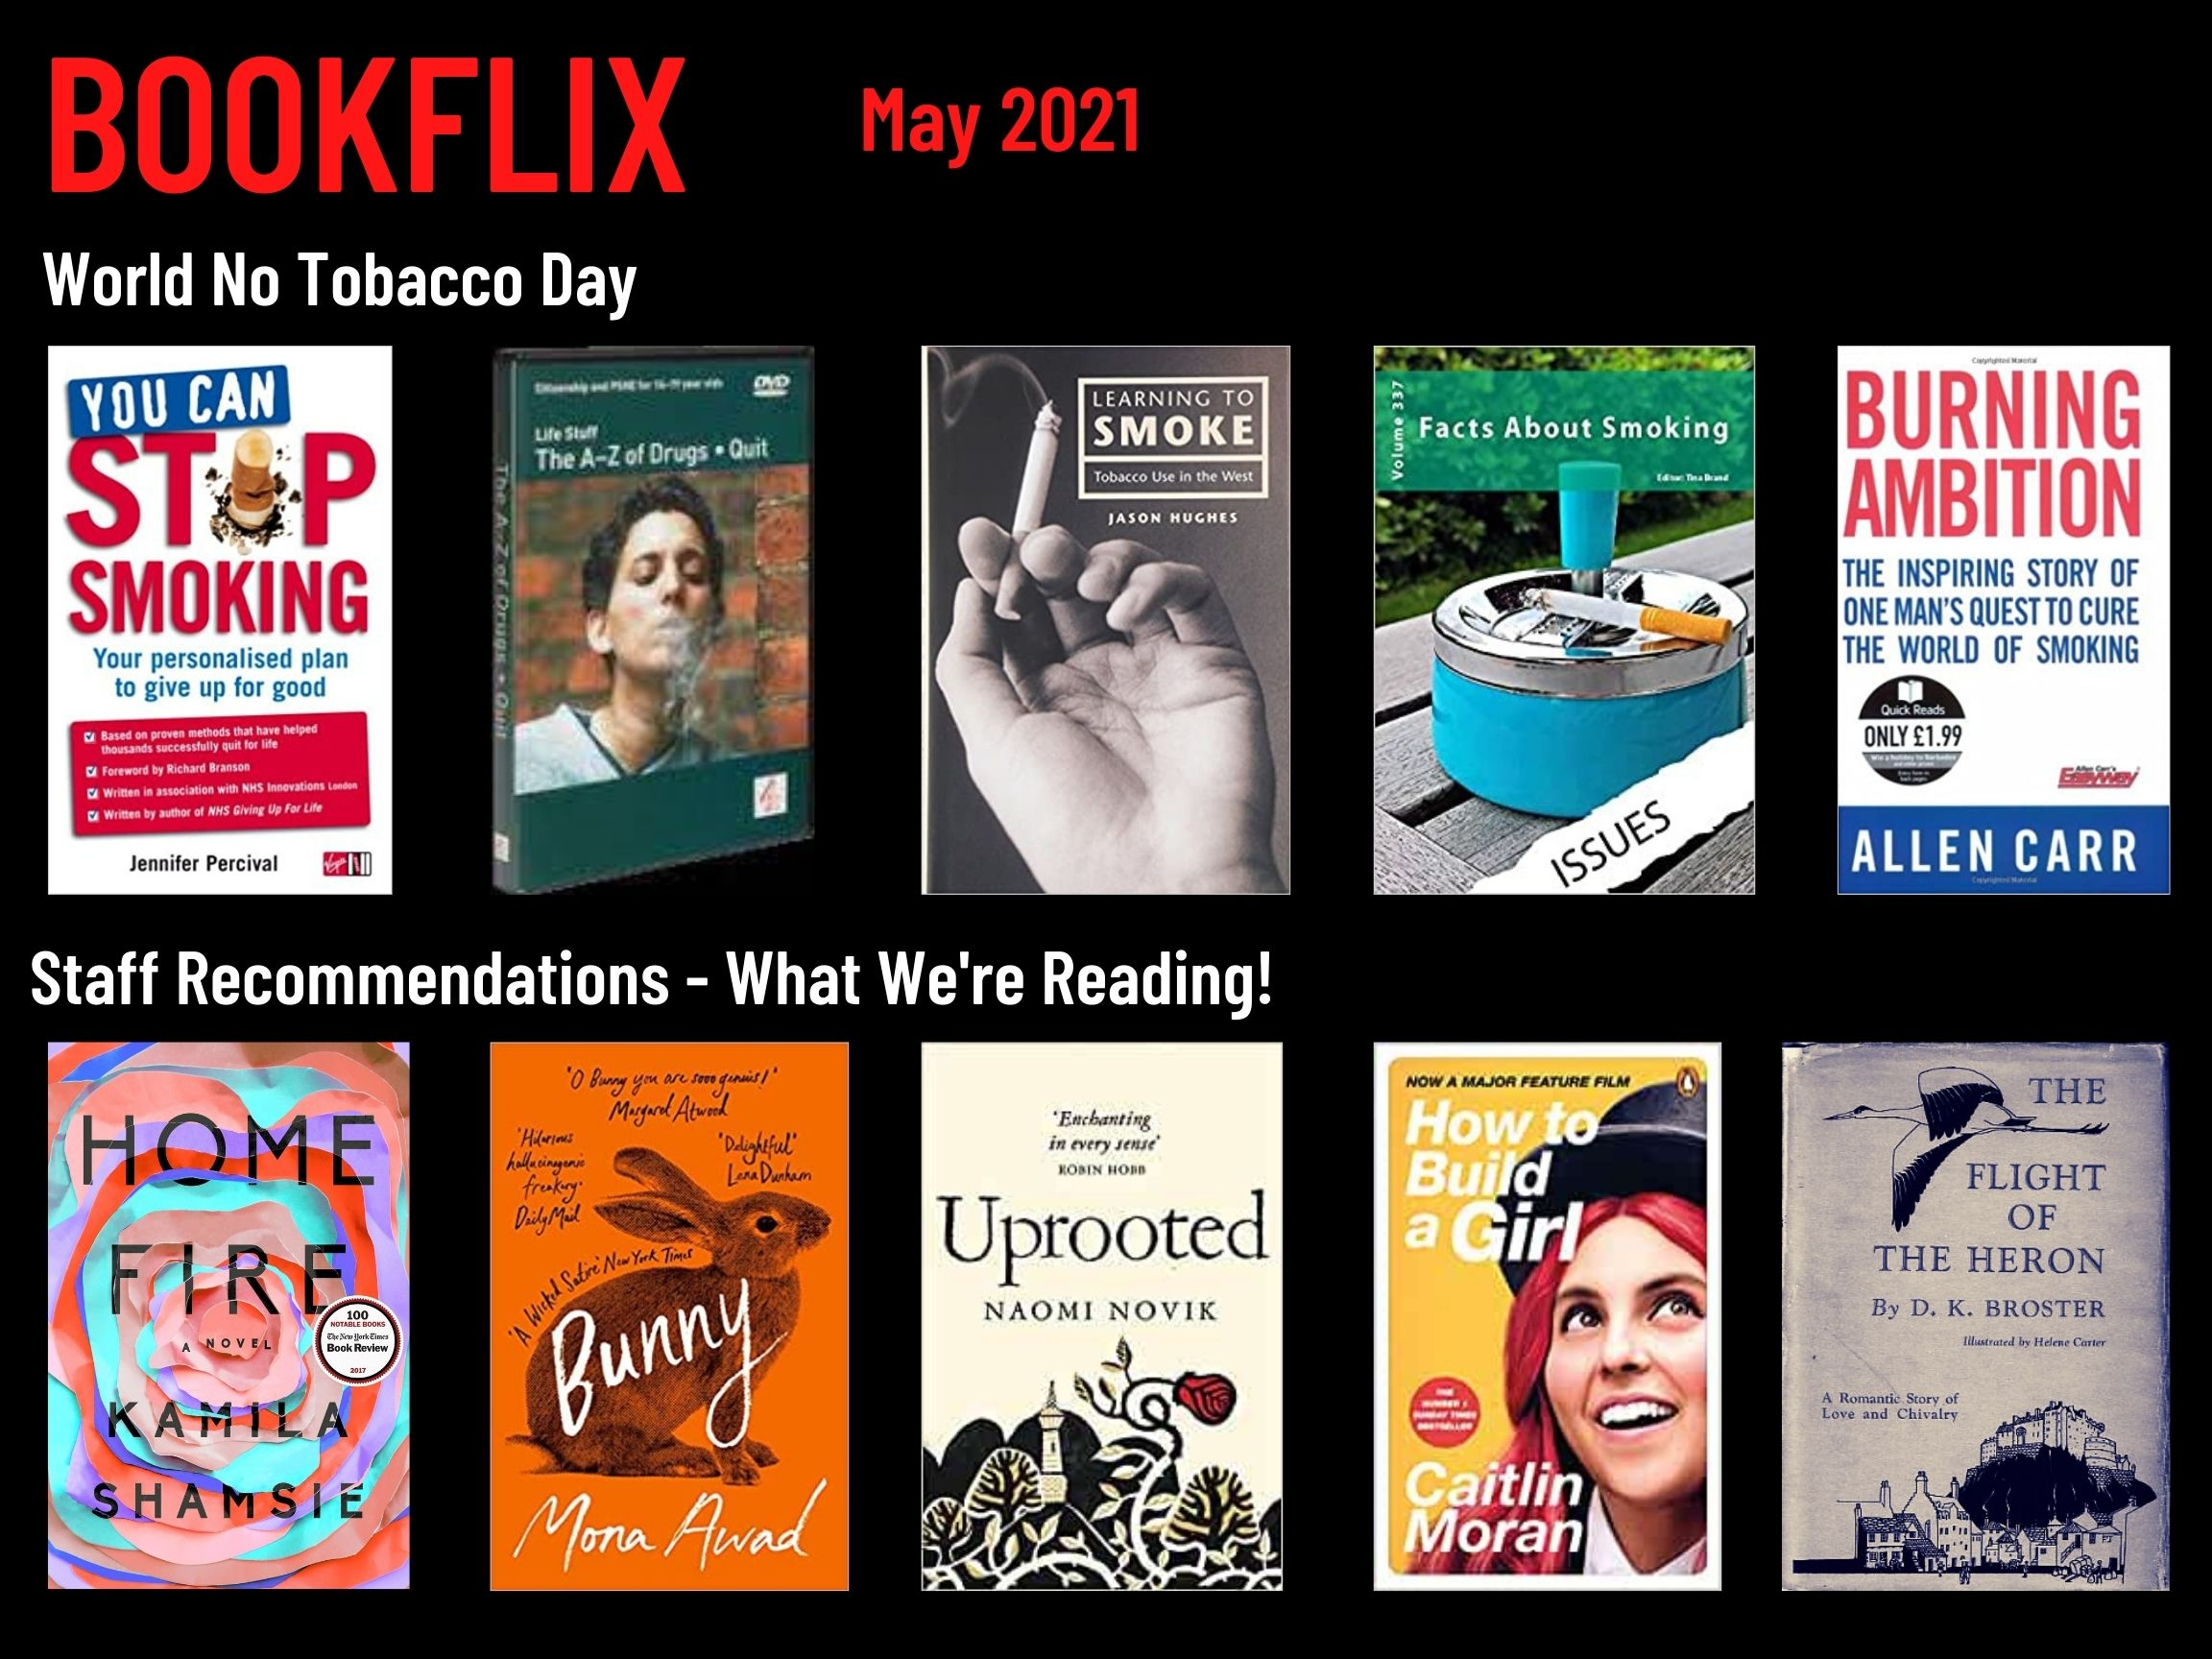 Bookflix page three. Text reads: Bookflix -May 2021. The page has 10 images of book/dvd covers. These are all listed in order in the body text below the images.